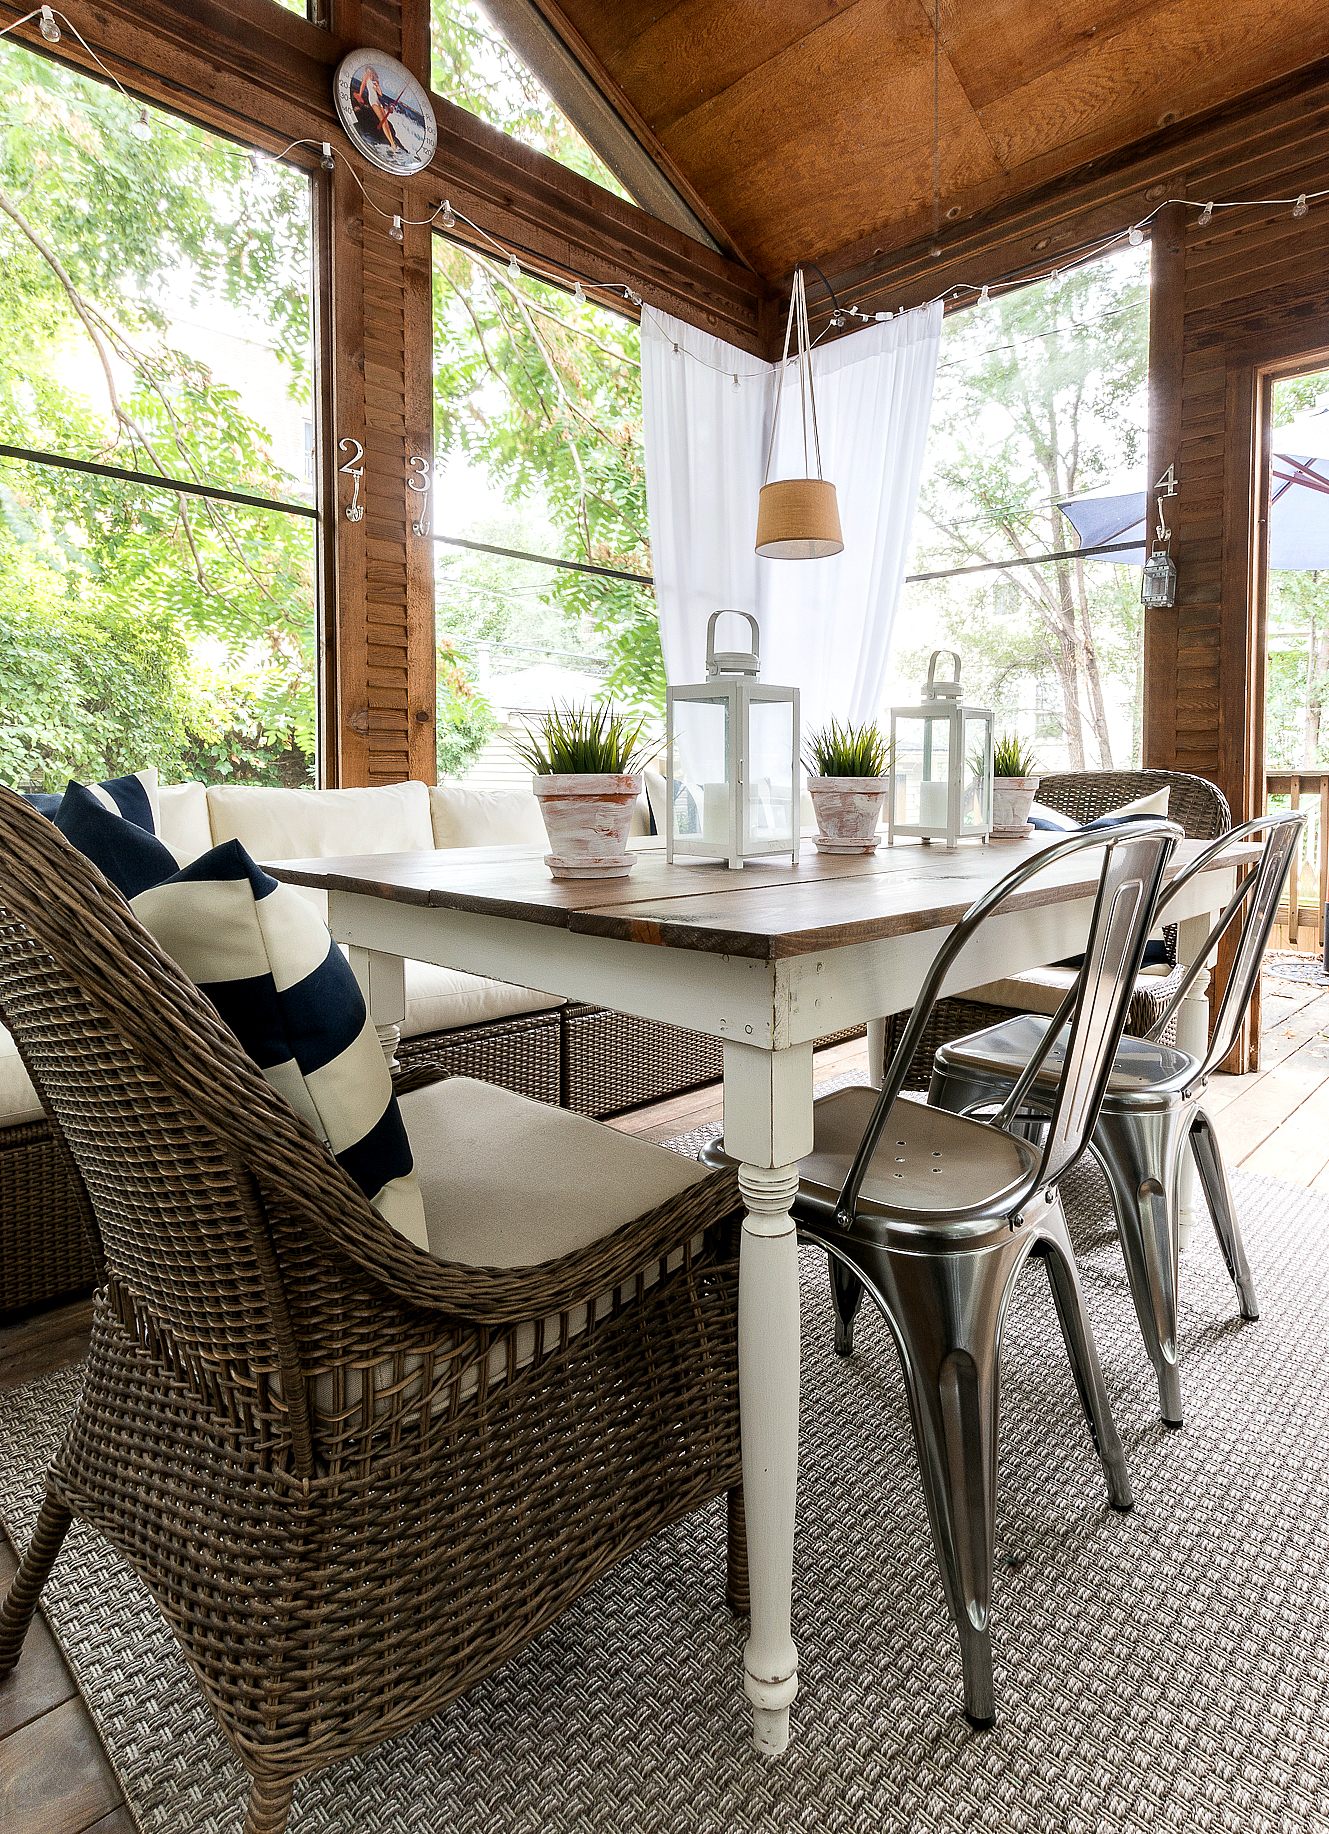 Farmhouse Table Wicker And Metal Chairs Screen Porch 3 1 1 It All Started With Paint